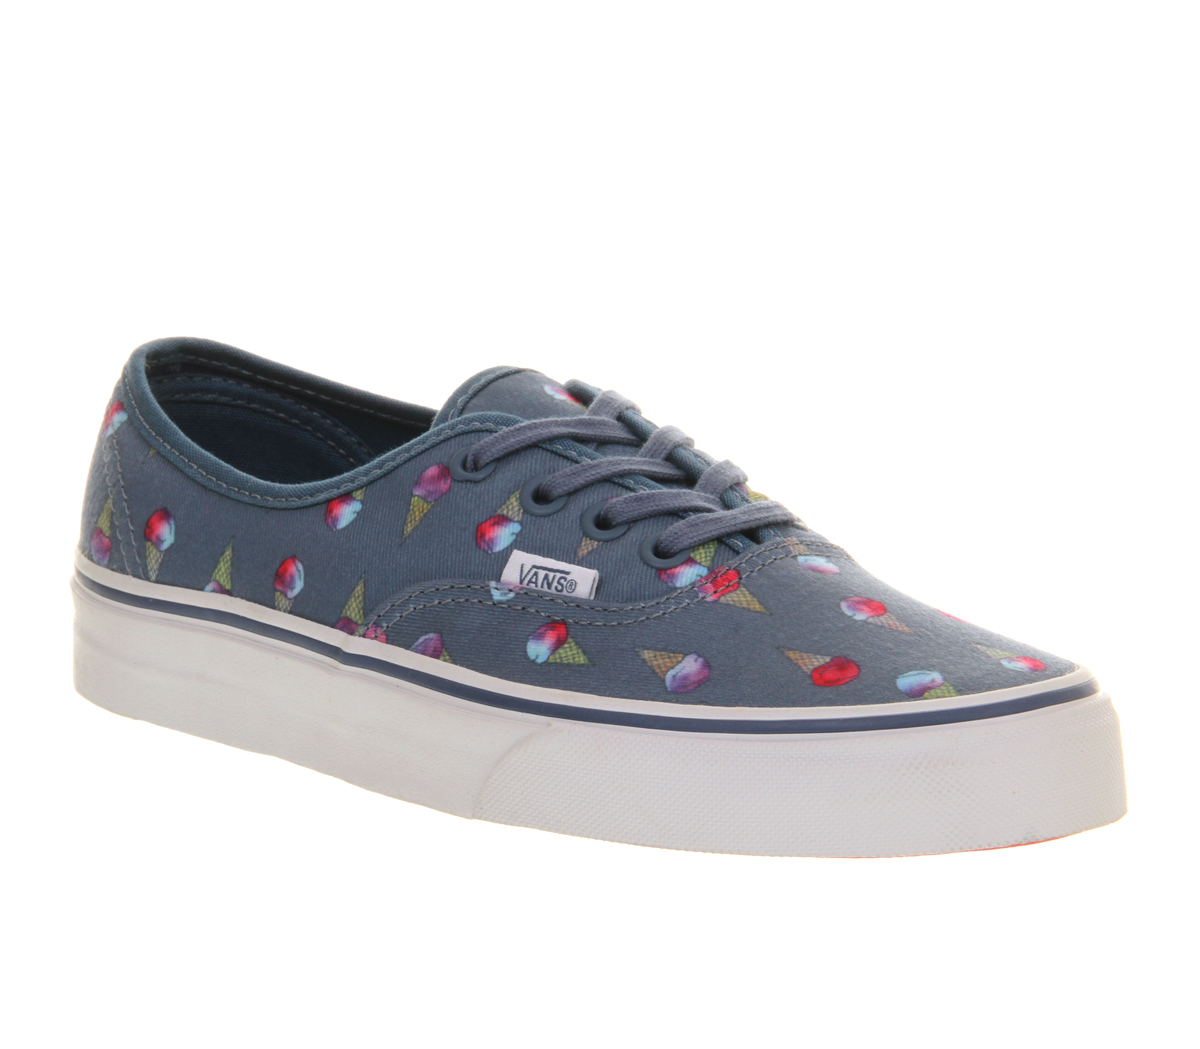 Vans-Authentic-Ice-Cream-Daze-Smu-Exclusive-Trainers-Shoes